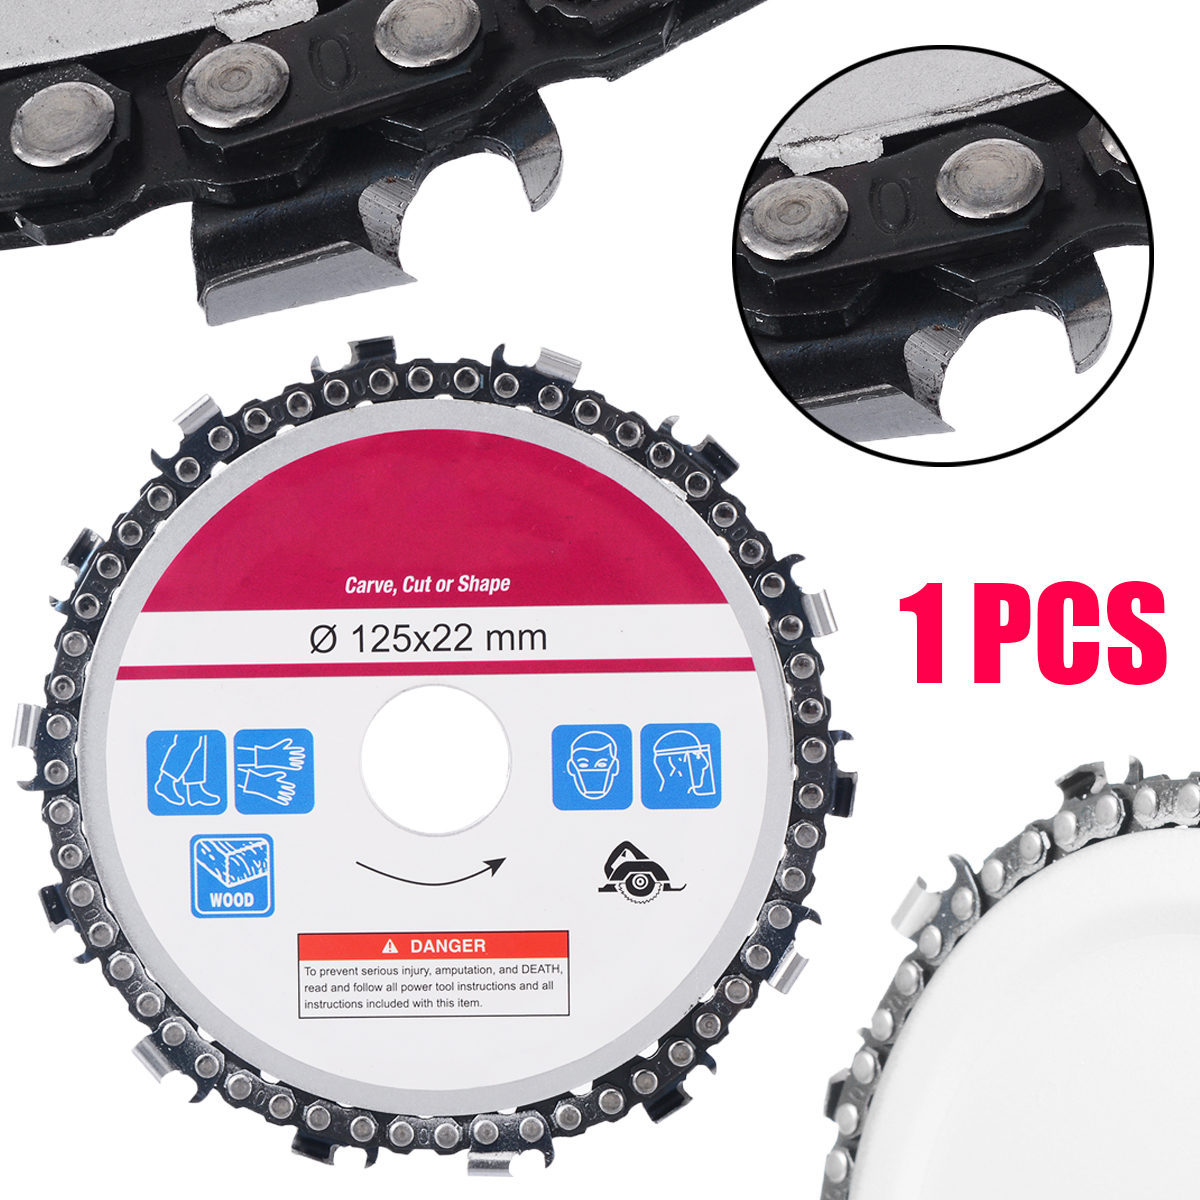 5 Angle Grinder Disc Saw Blade 14 Teeth Cut Chain Woodworking Carving Disc for Chainsaw Cutting Wood5 Angle Grinder Disc Saw Blade 14 Teeth Cut Chain Woodworking Carving Disc for Chainsaw Cutting Wood